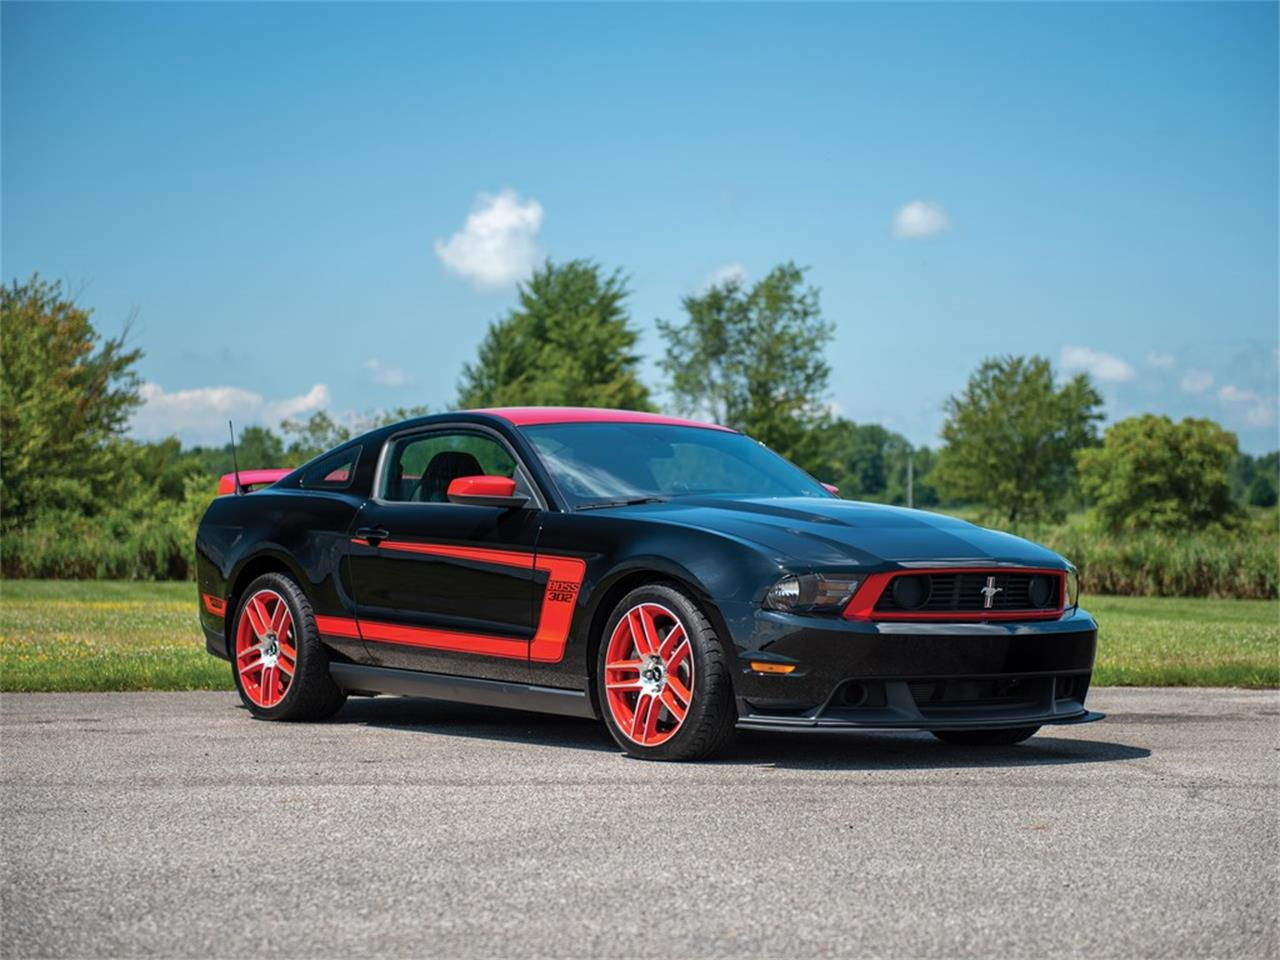 2012 ford mustang boss 302 for sale classiccars com cc 1243836